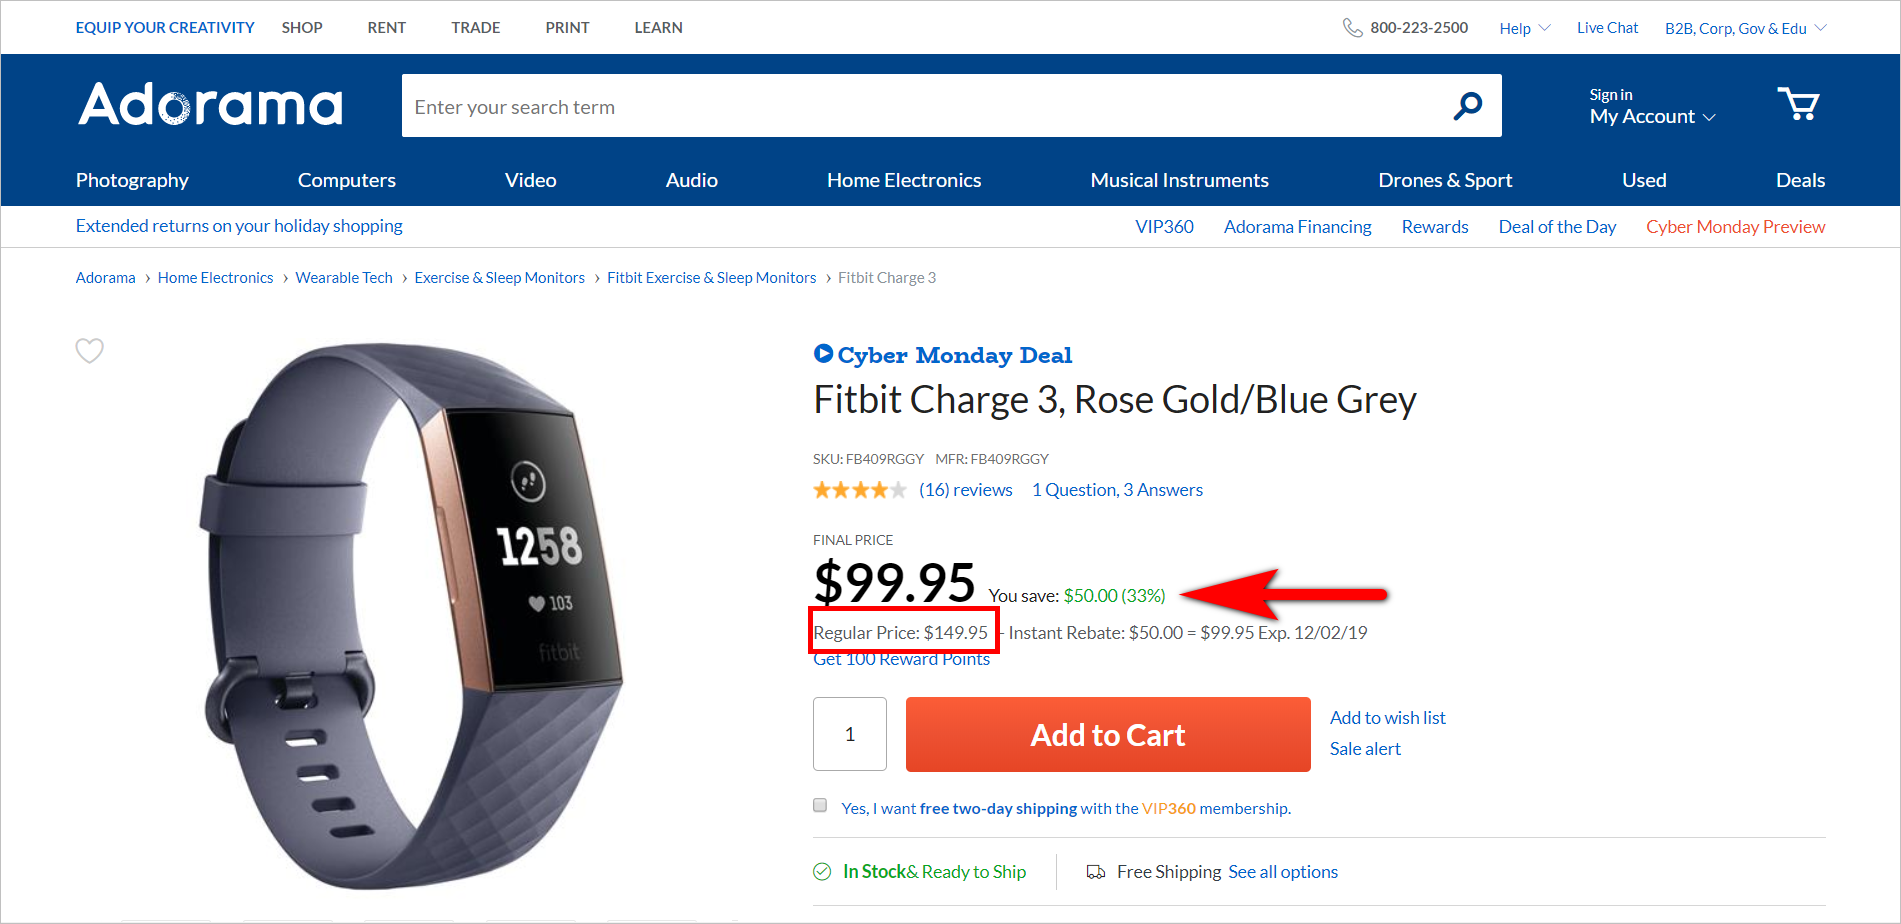 the rule of 100 - more than $100 example : adorama.com product detail page for fitbit charge 3 with a regular price of $149.95 and a sale price of $99.95. the pdp shows that the customer saves $50.00 or 33%